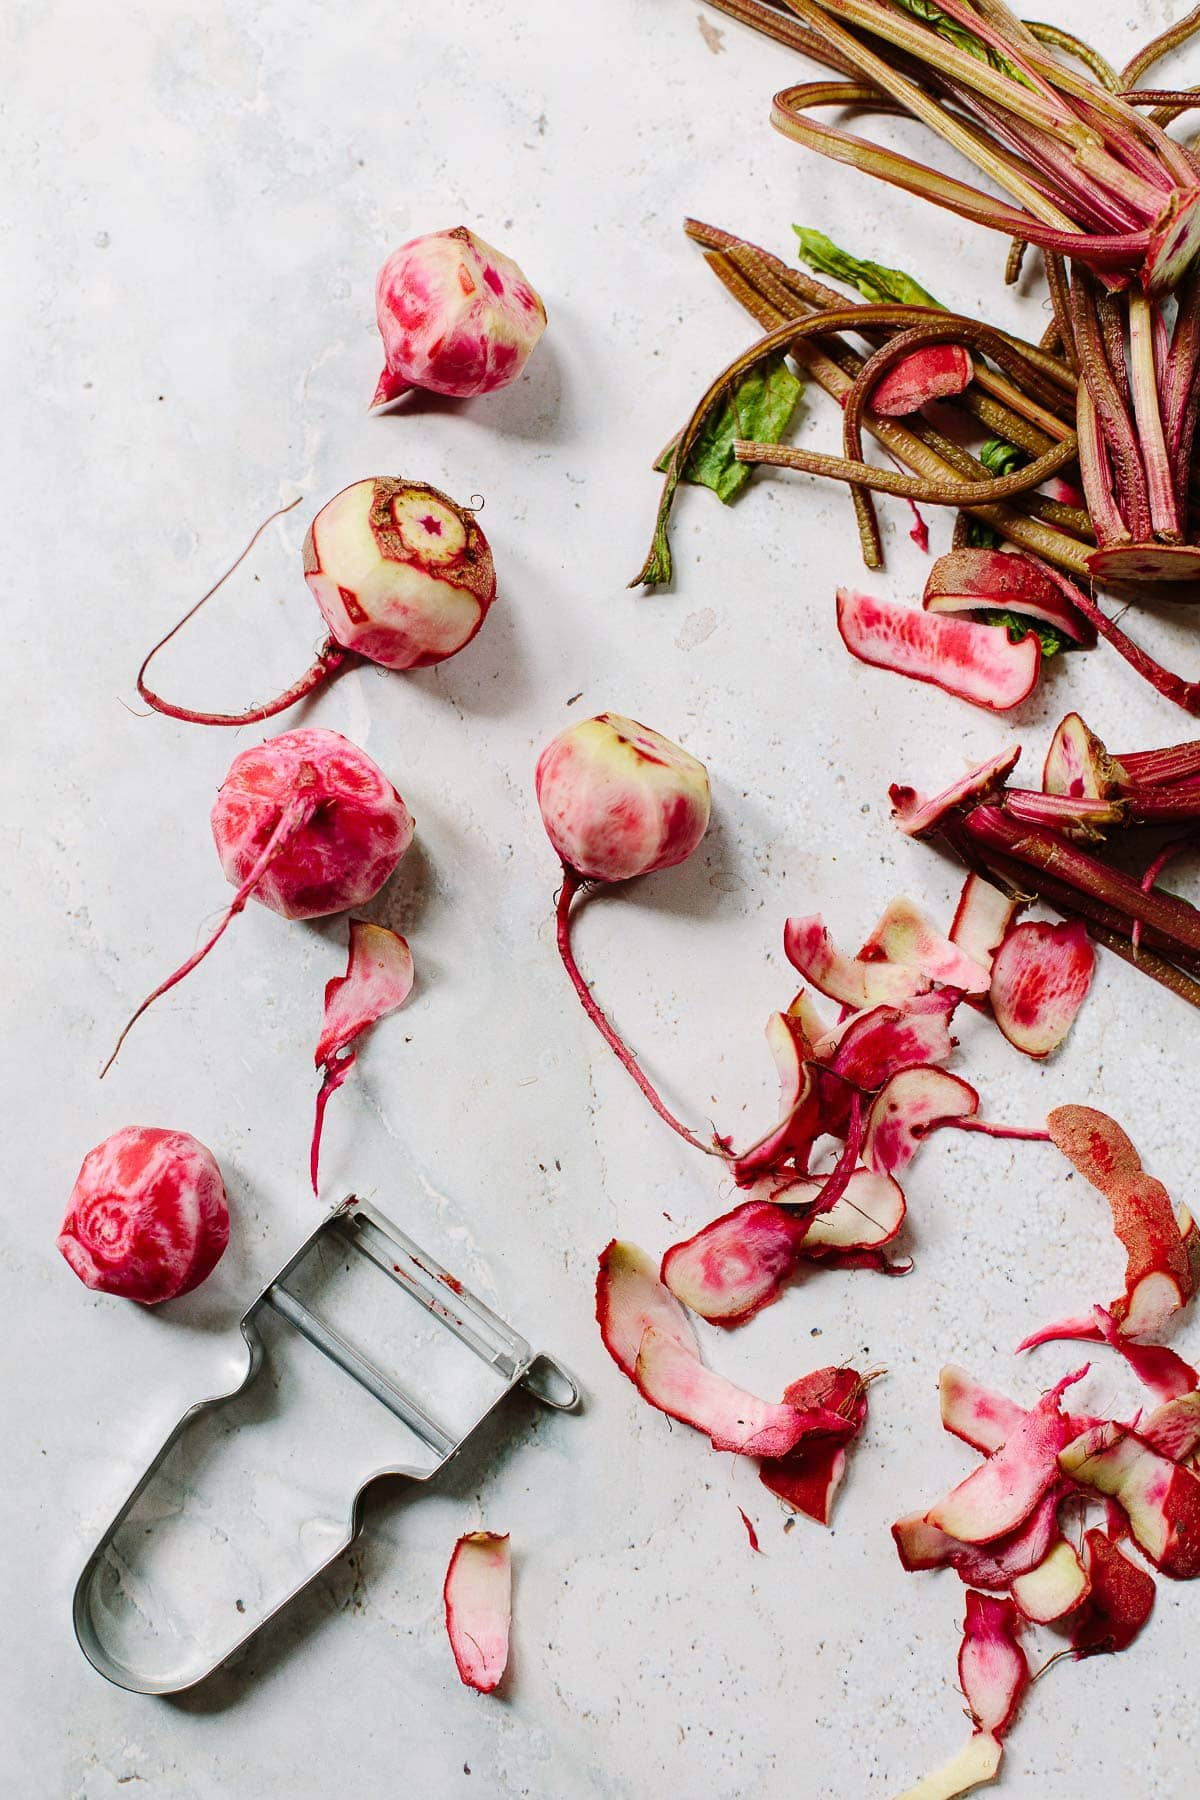 How to peel Chioggia beets